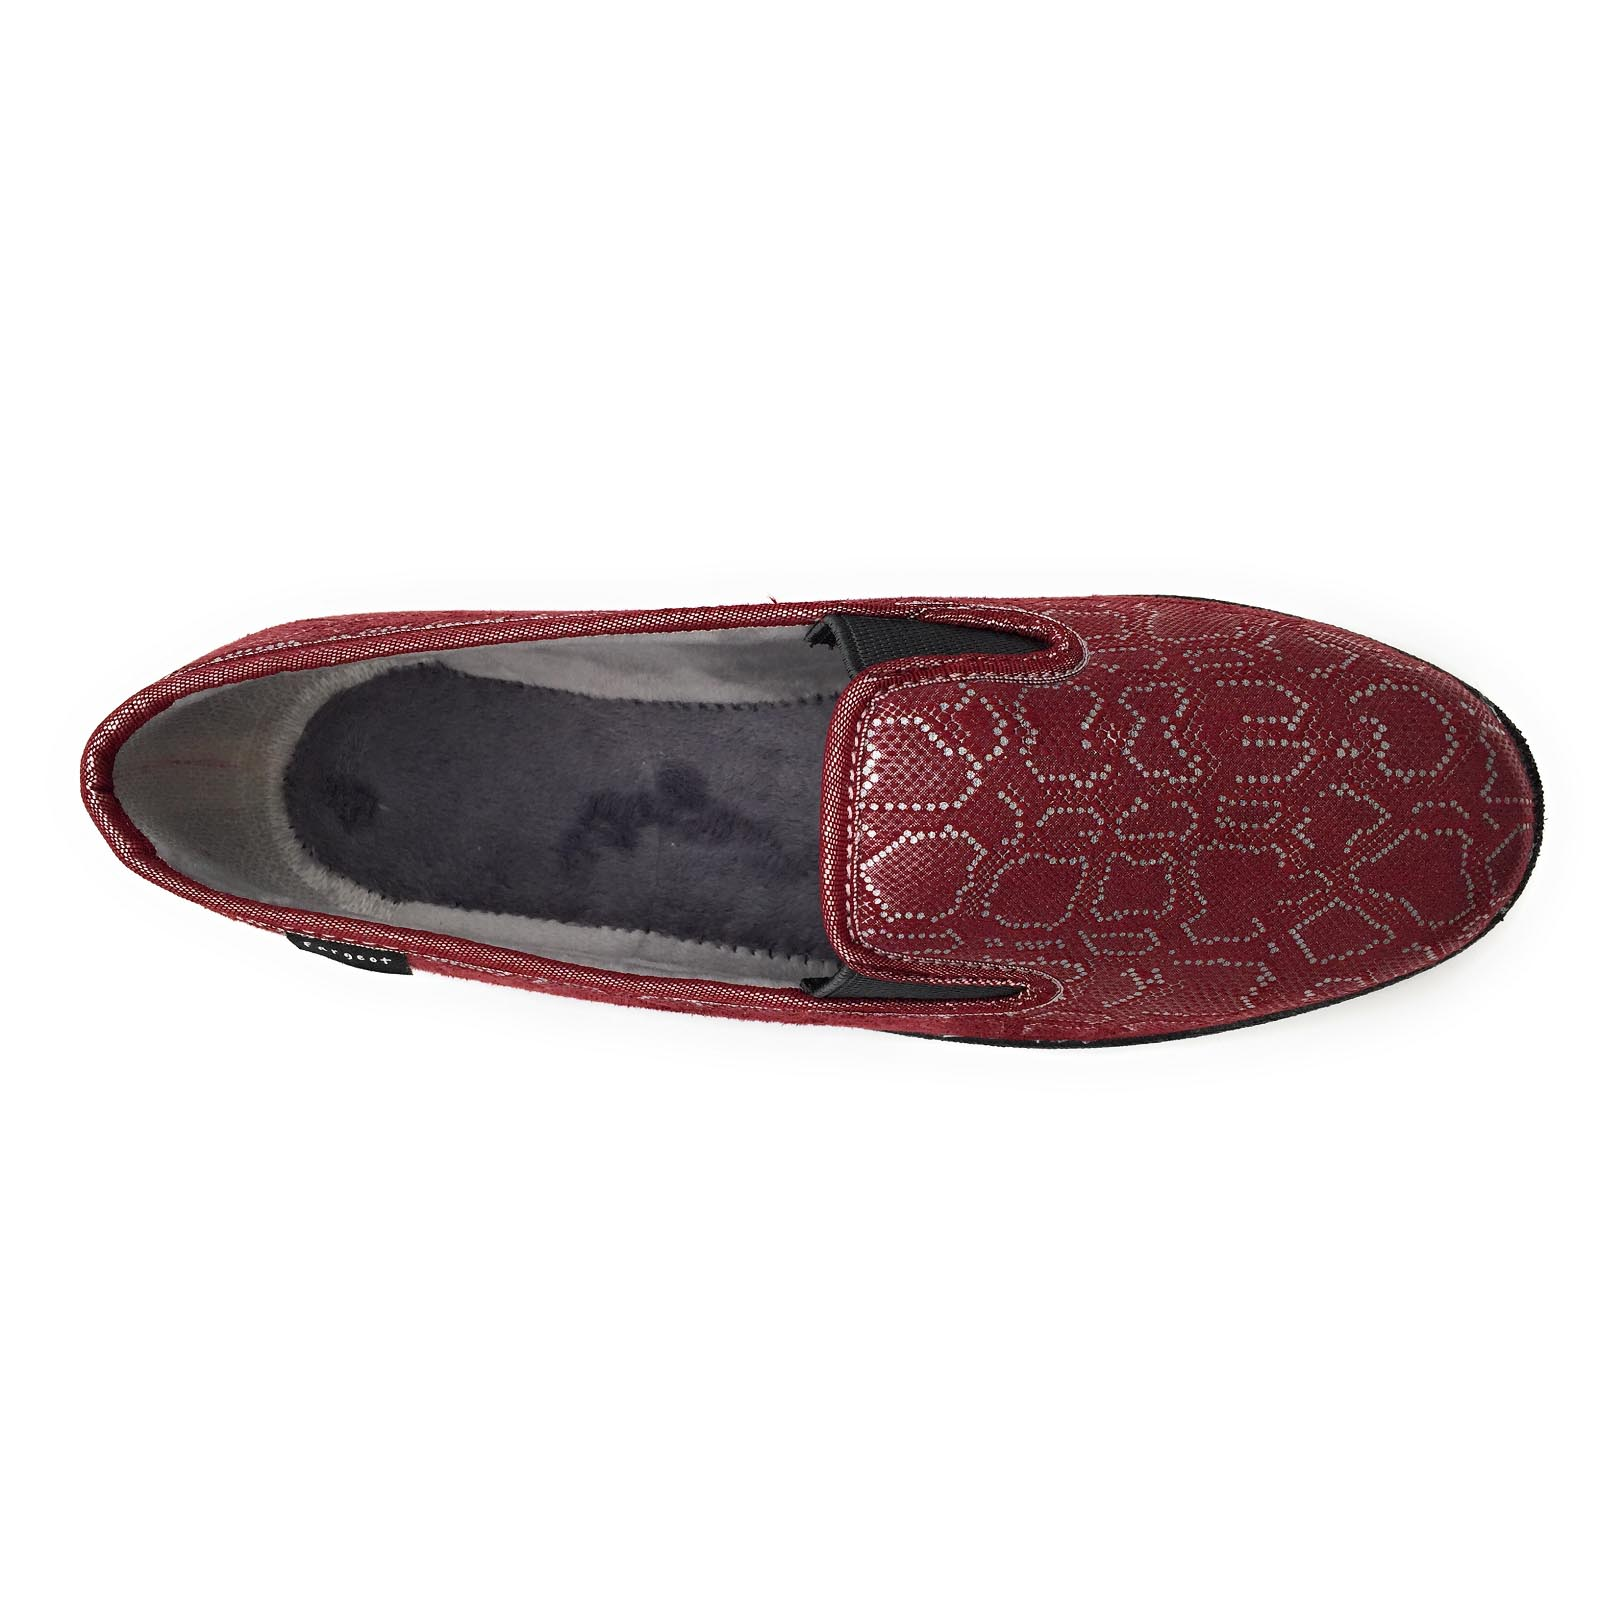 Fargeot chaussons sabord rouge8079802_4